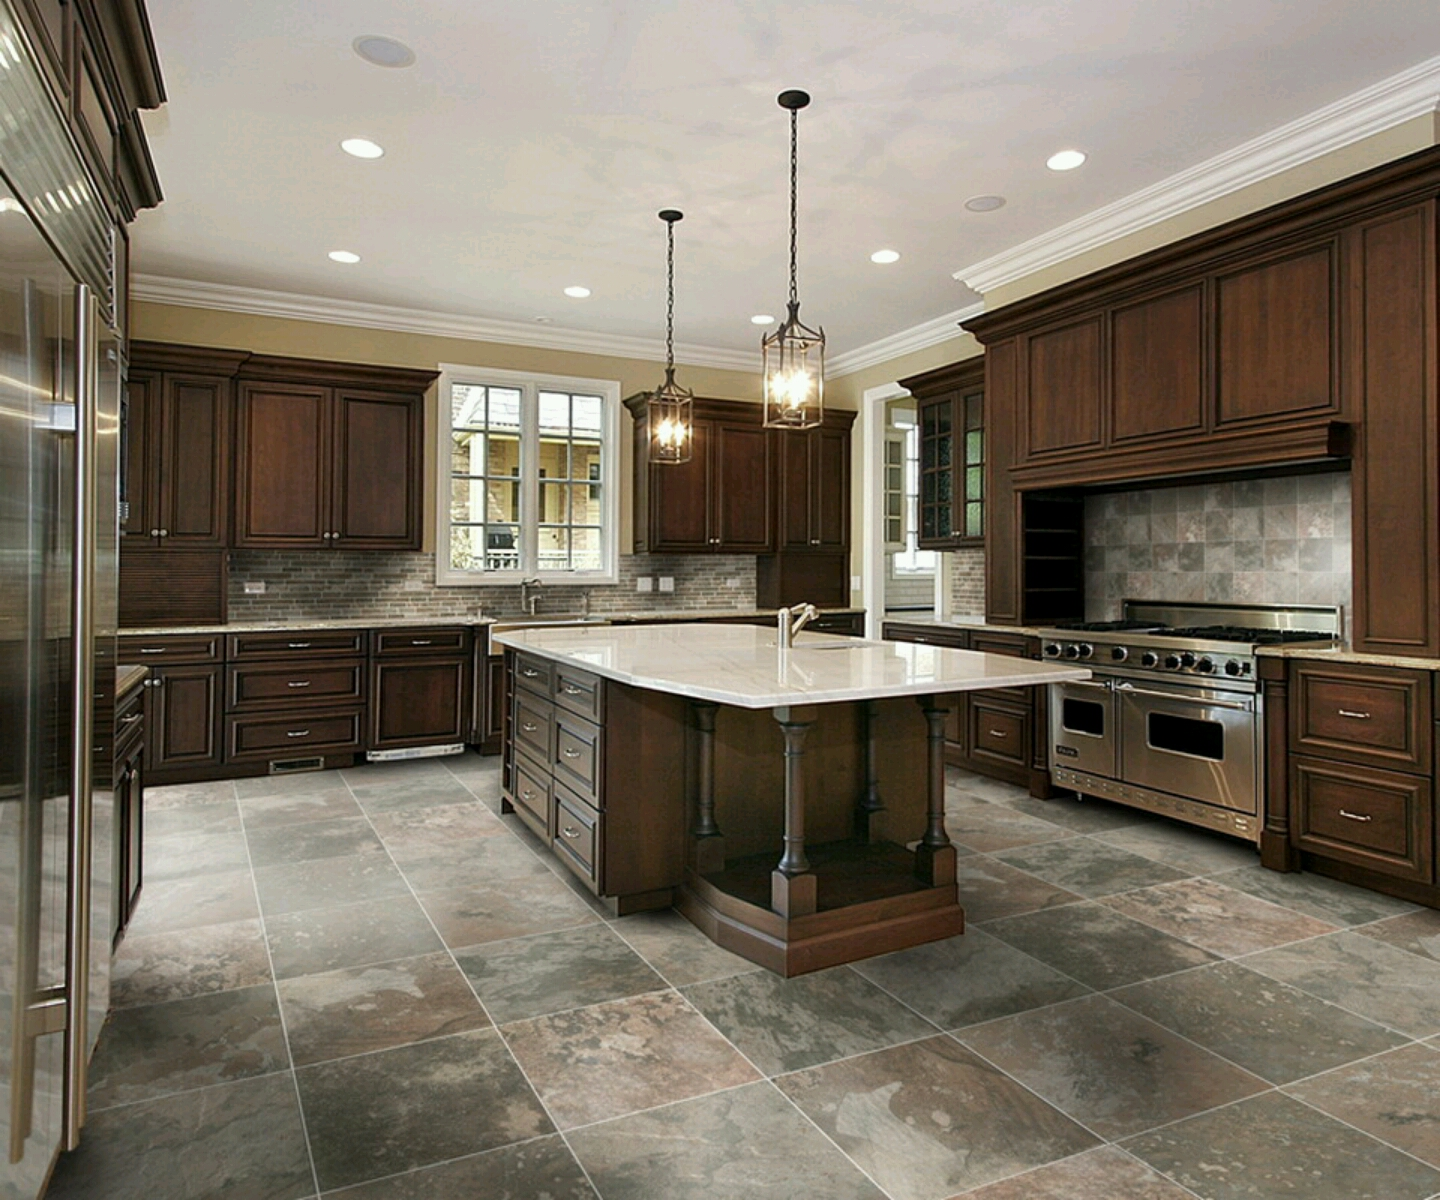 Kitchen Floor Tiles Modern: New Home Designs Latest.: Modern Kitchen Designs Ideas